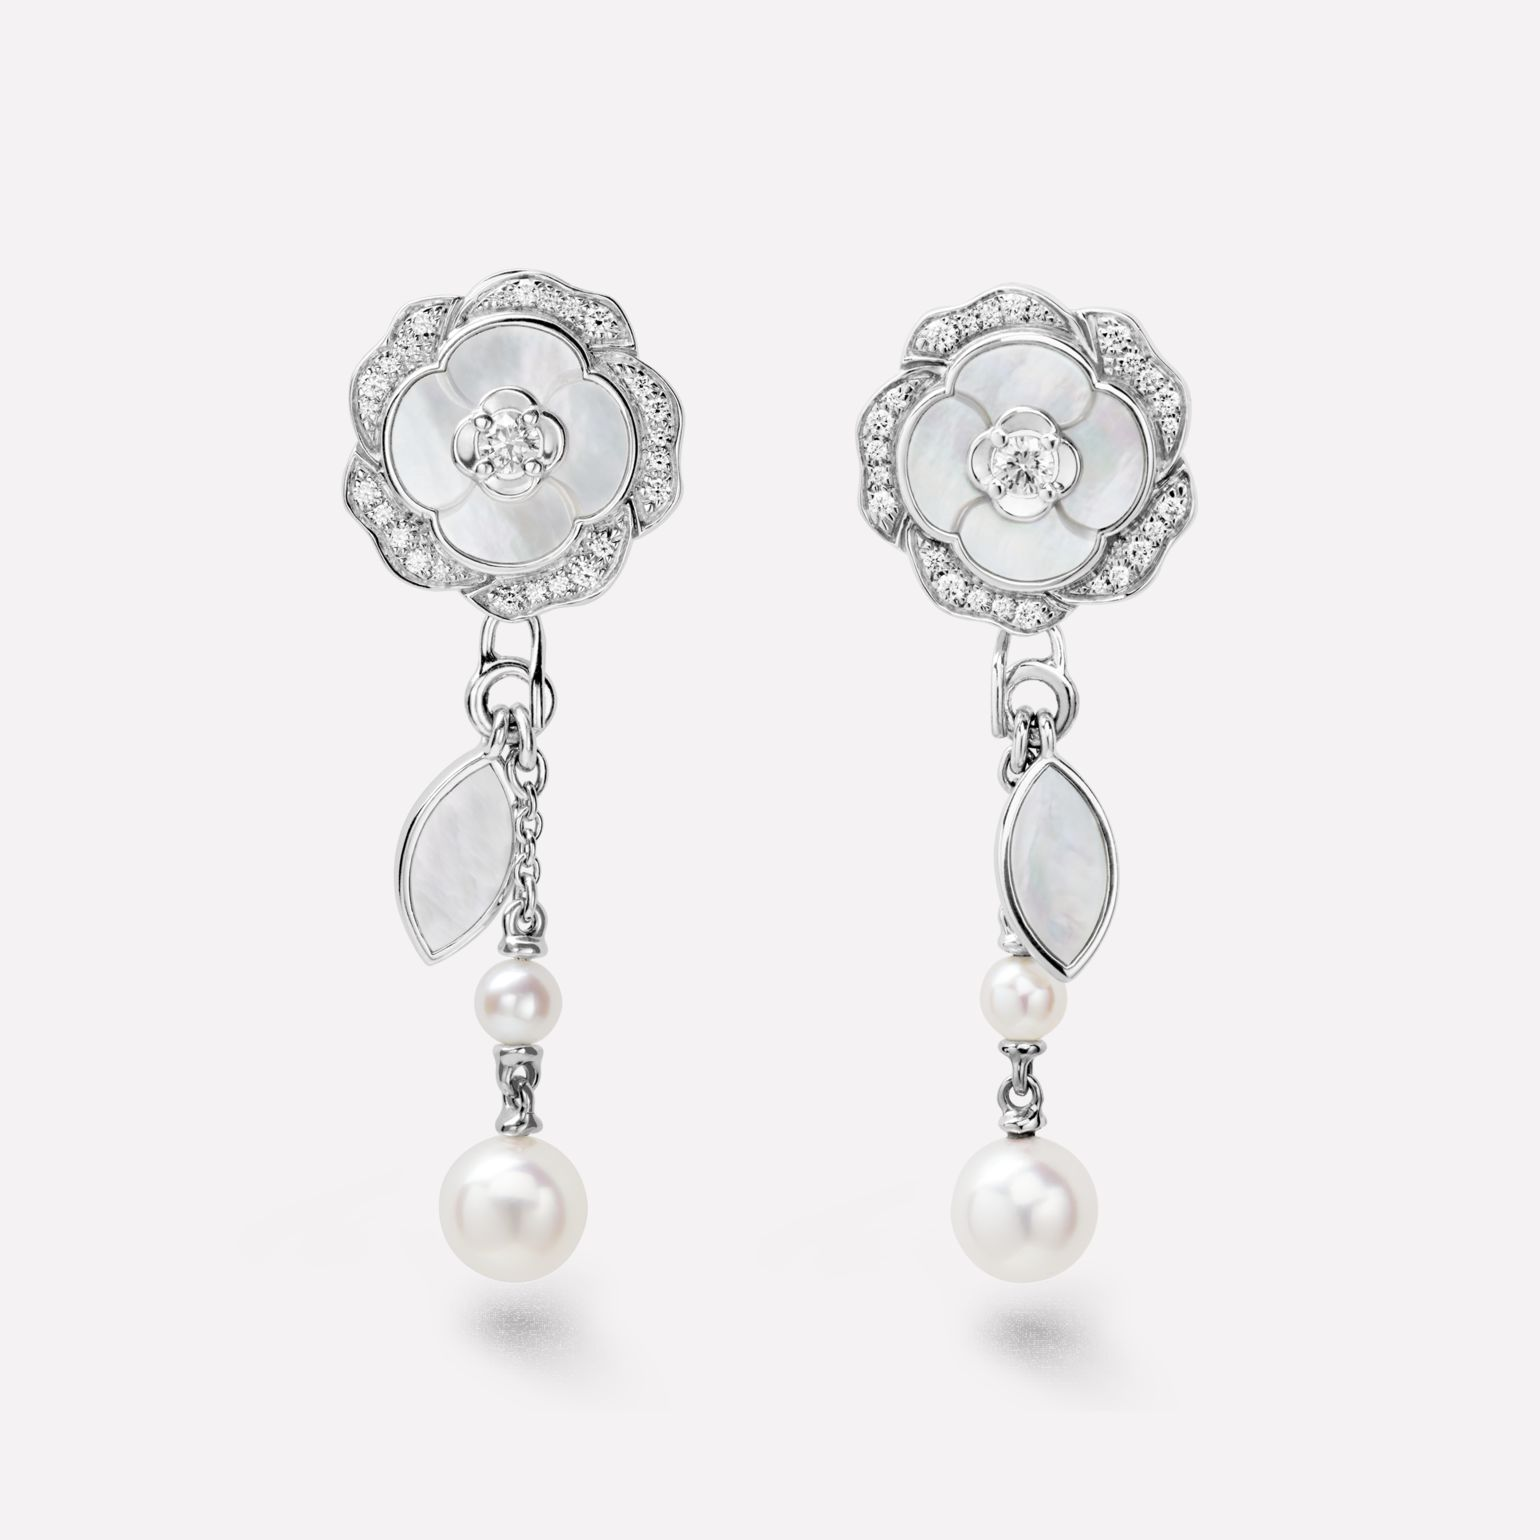 Bouton de Camélia transformable earrings 18K white gold, diamonds, cultured pearls, white mother-of-pearl